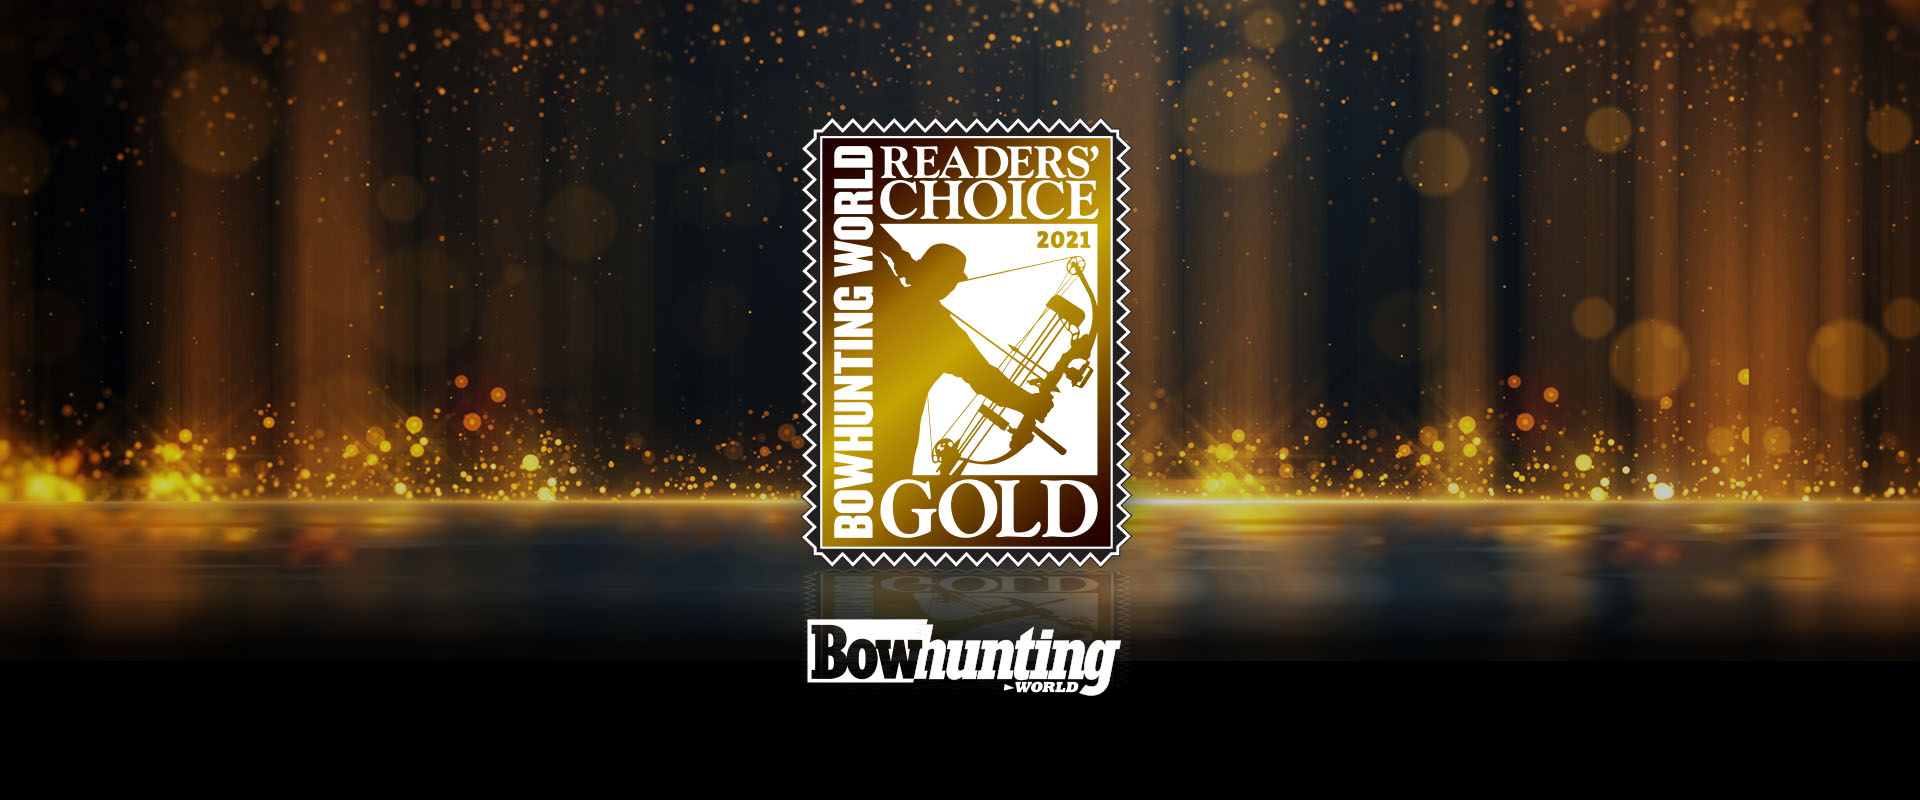 2021 Bowhunting Gold Award